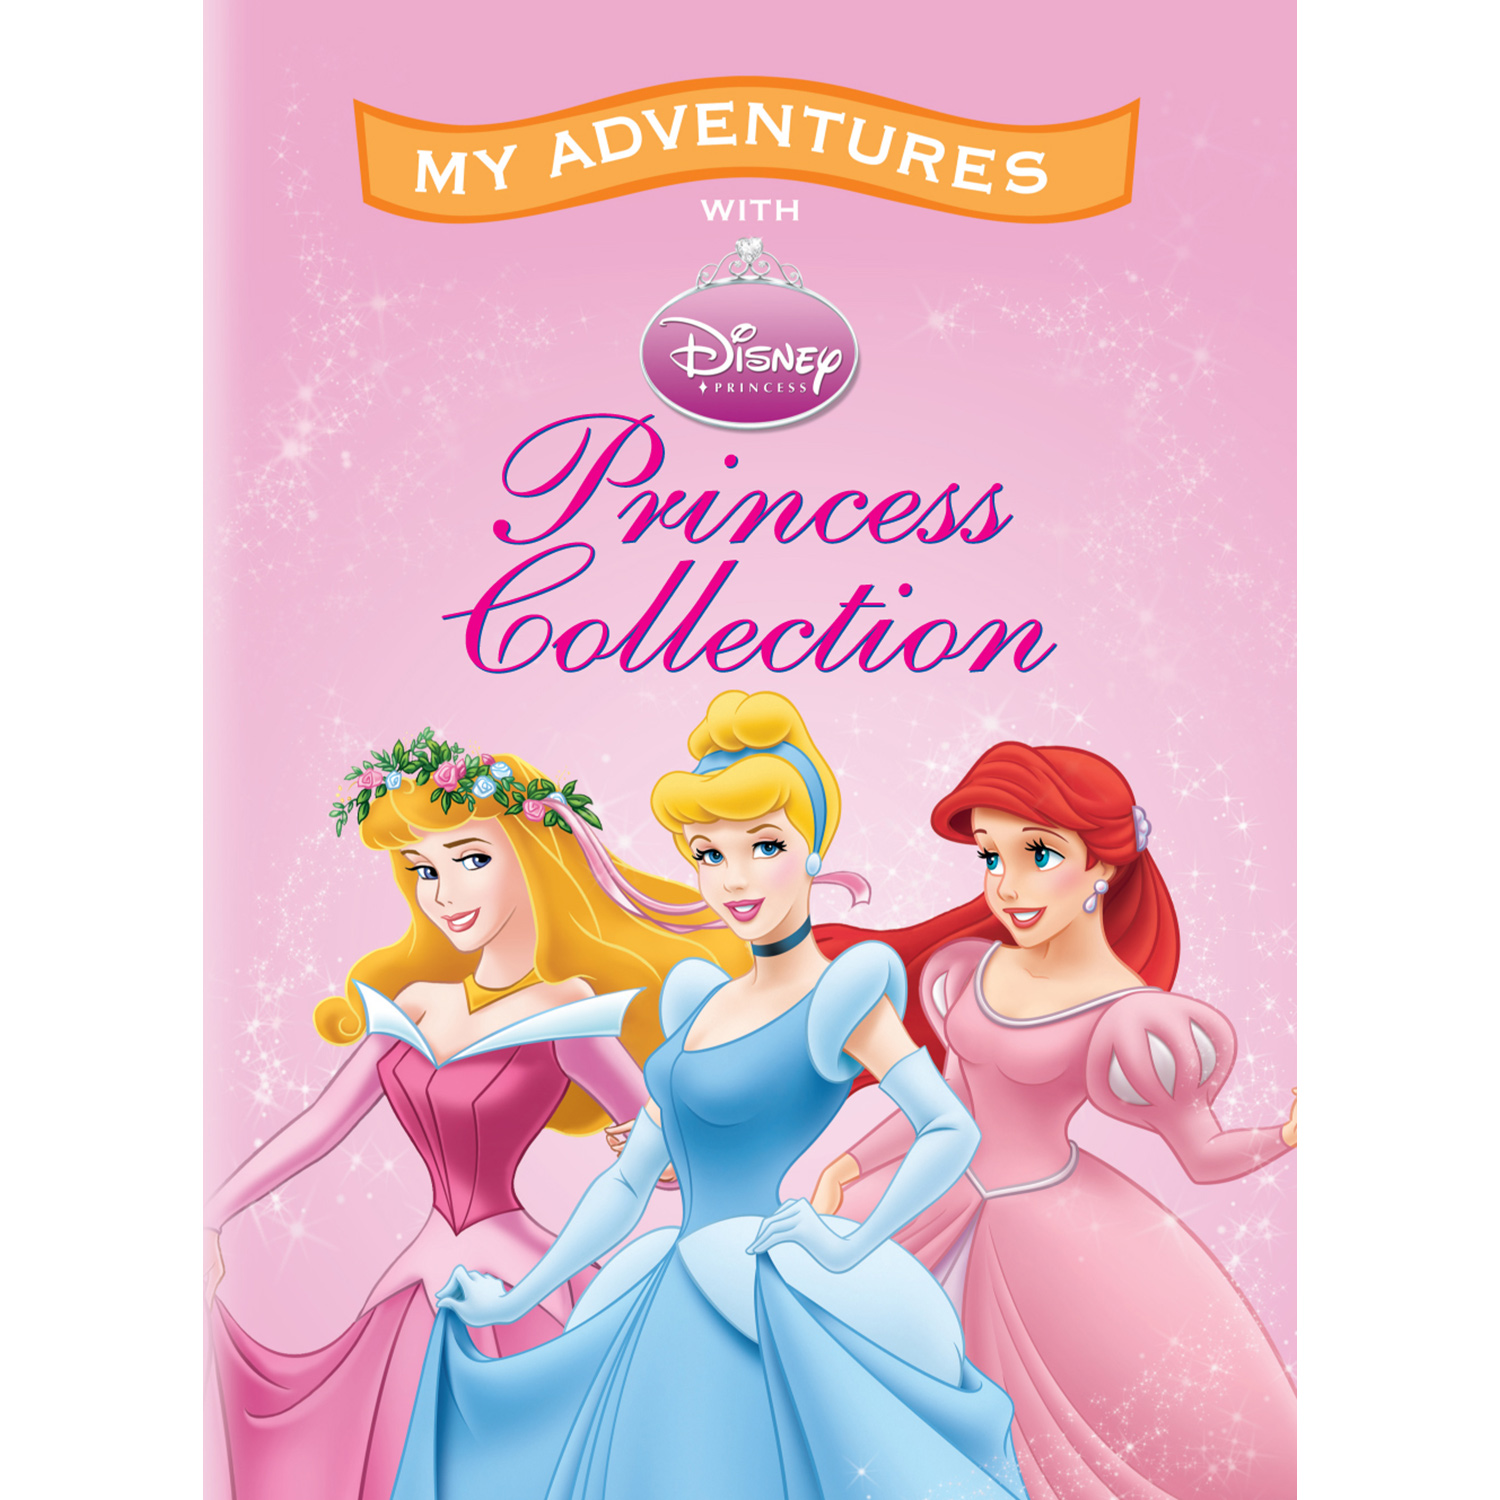 My Adventures with Disney Princess - 8x11 Soft Cover Book